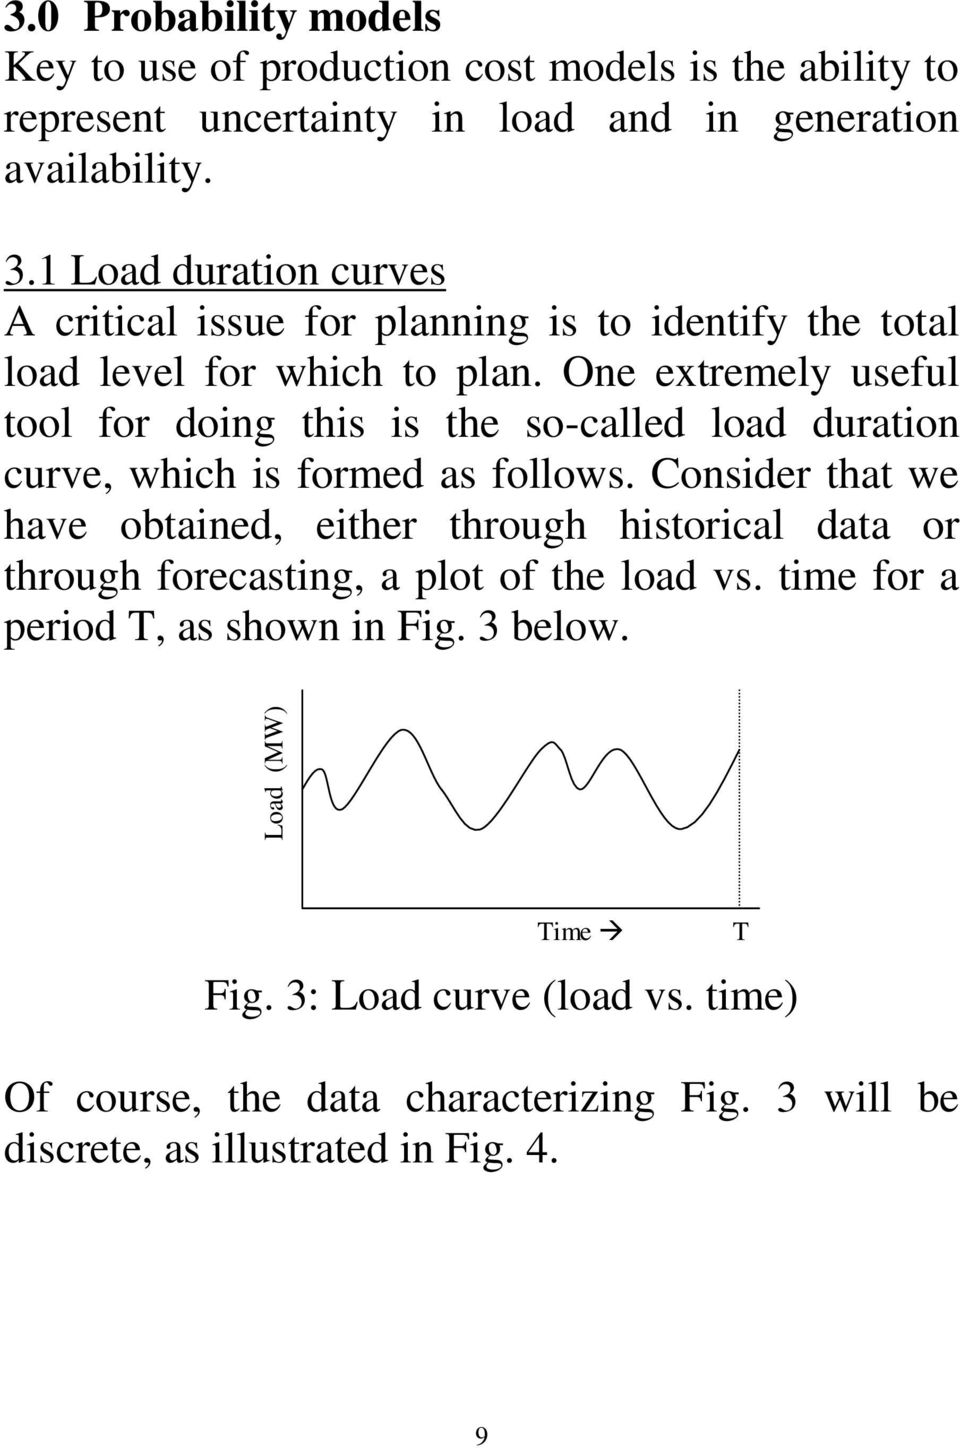 Considr that w hav obtaind, ithr through historical data or through forcasting, a plot of th load vs. tim for a priod T, as shown in Fig. 3 blow.